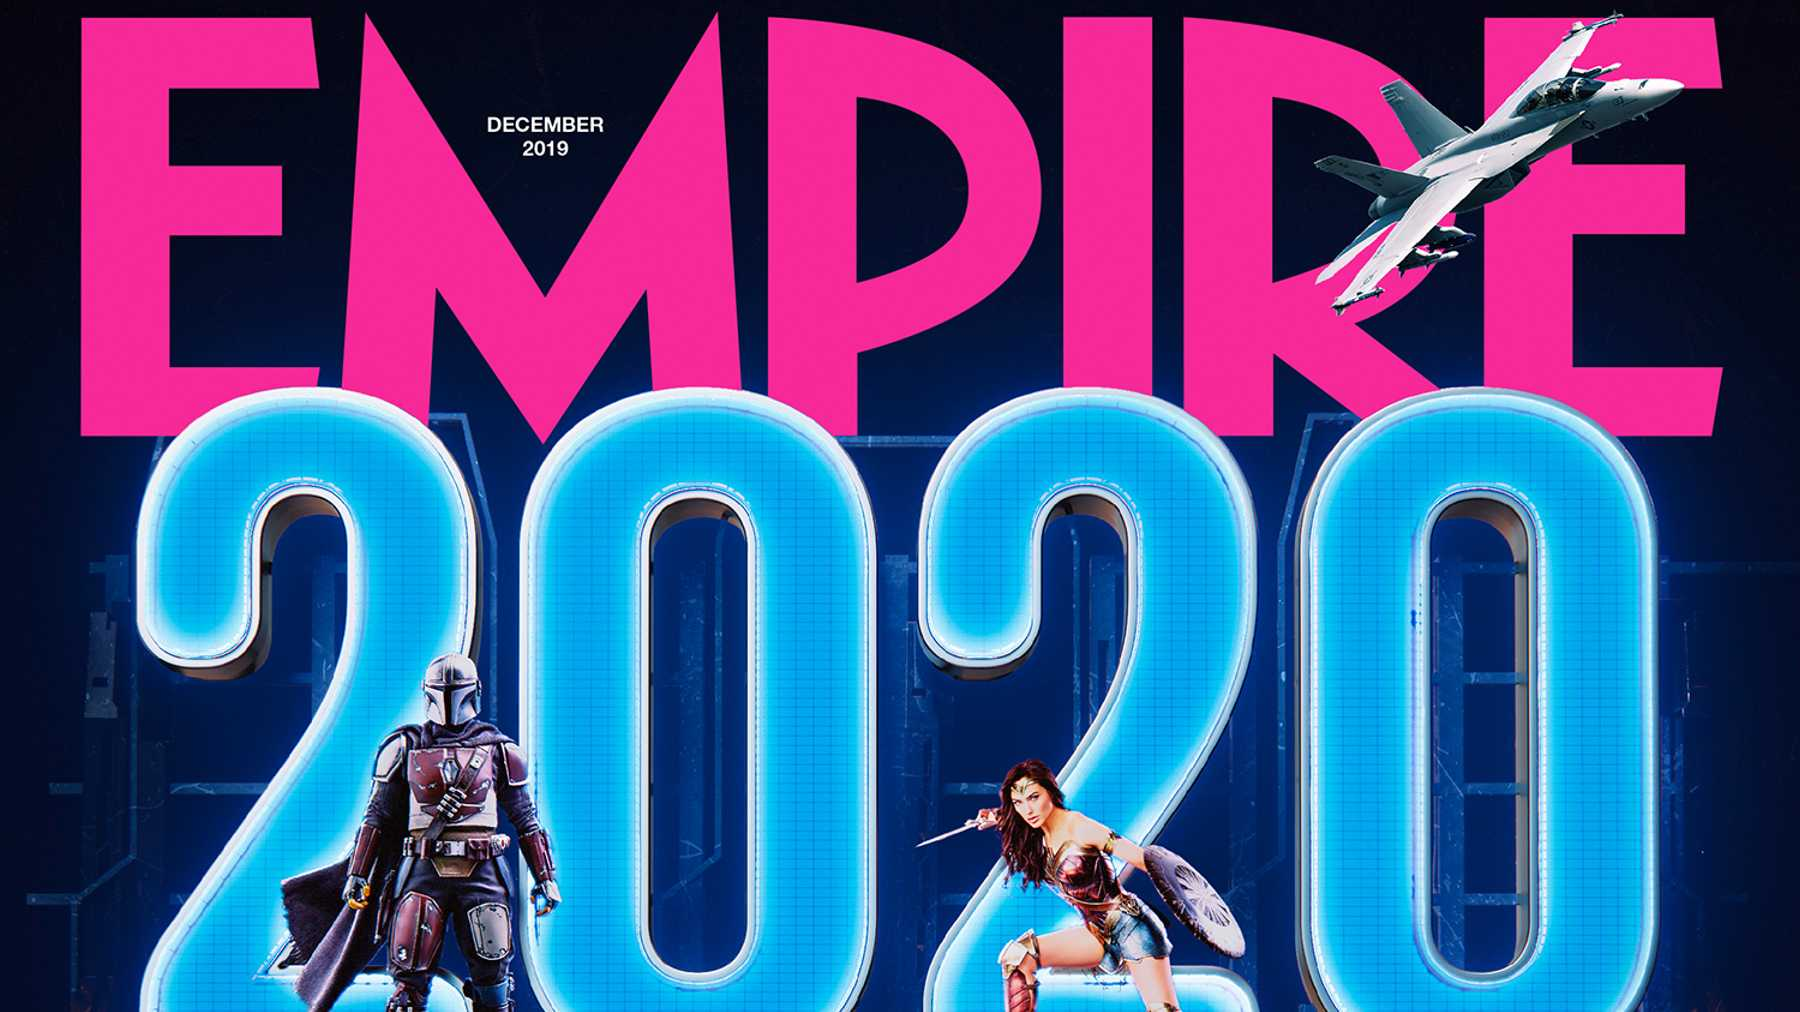 Empire Christmas 2020 Empire Issue Preview: 2020 Preview, Little Women, Fight Club, Last